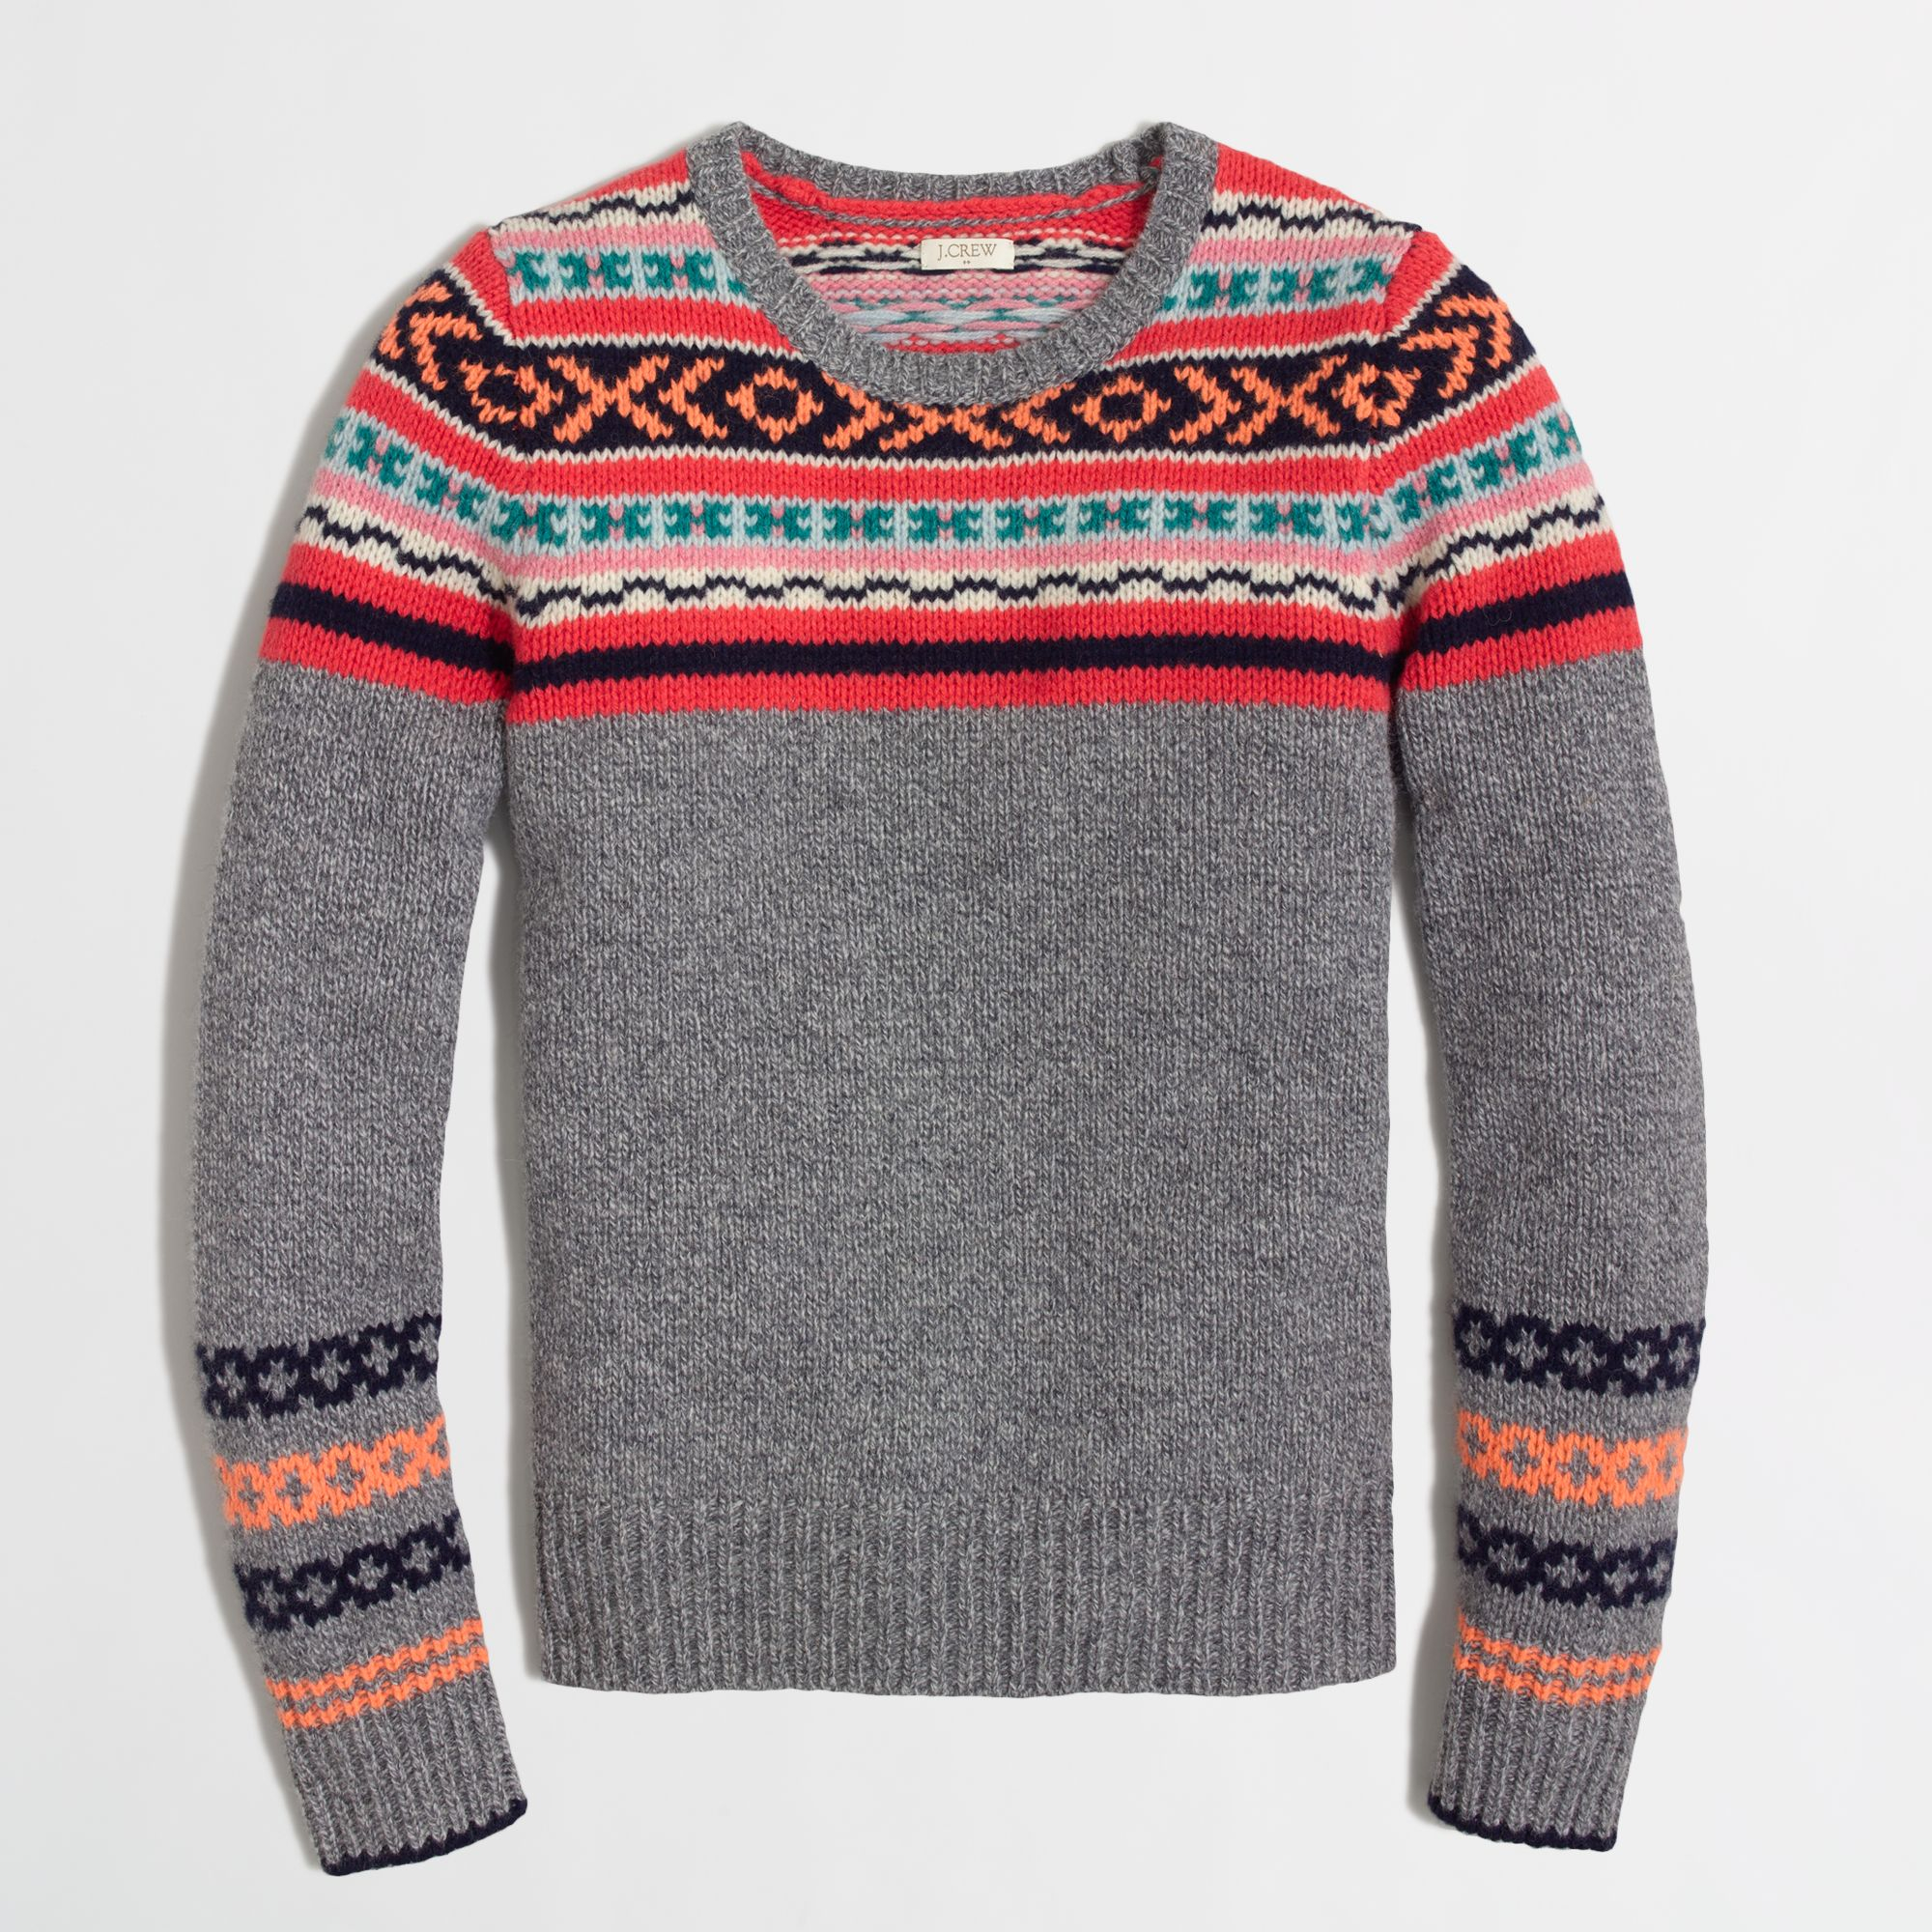 J.crew Factory Lambswool Neon Fair Isle Sweater in Gray | Lyst